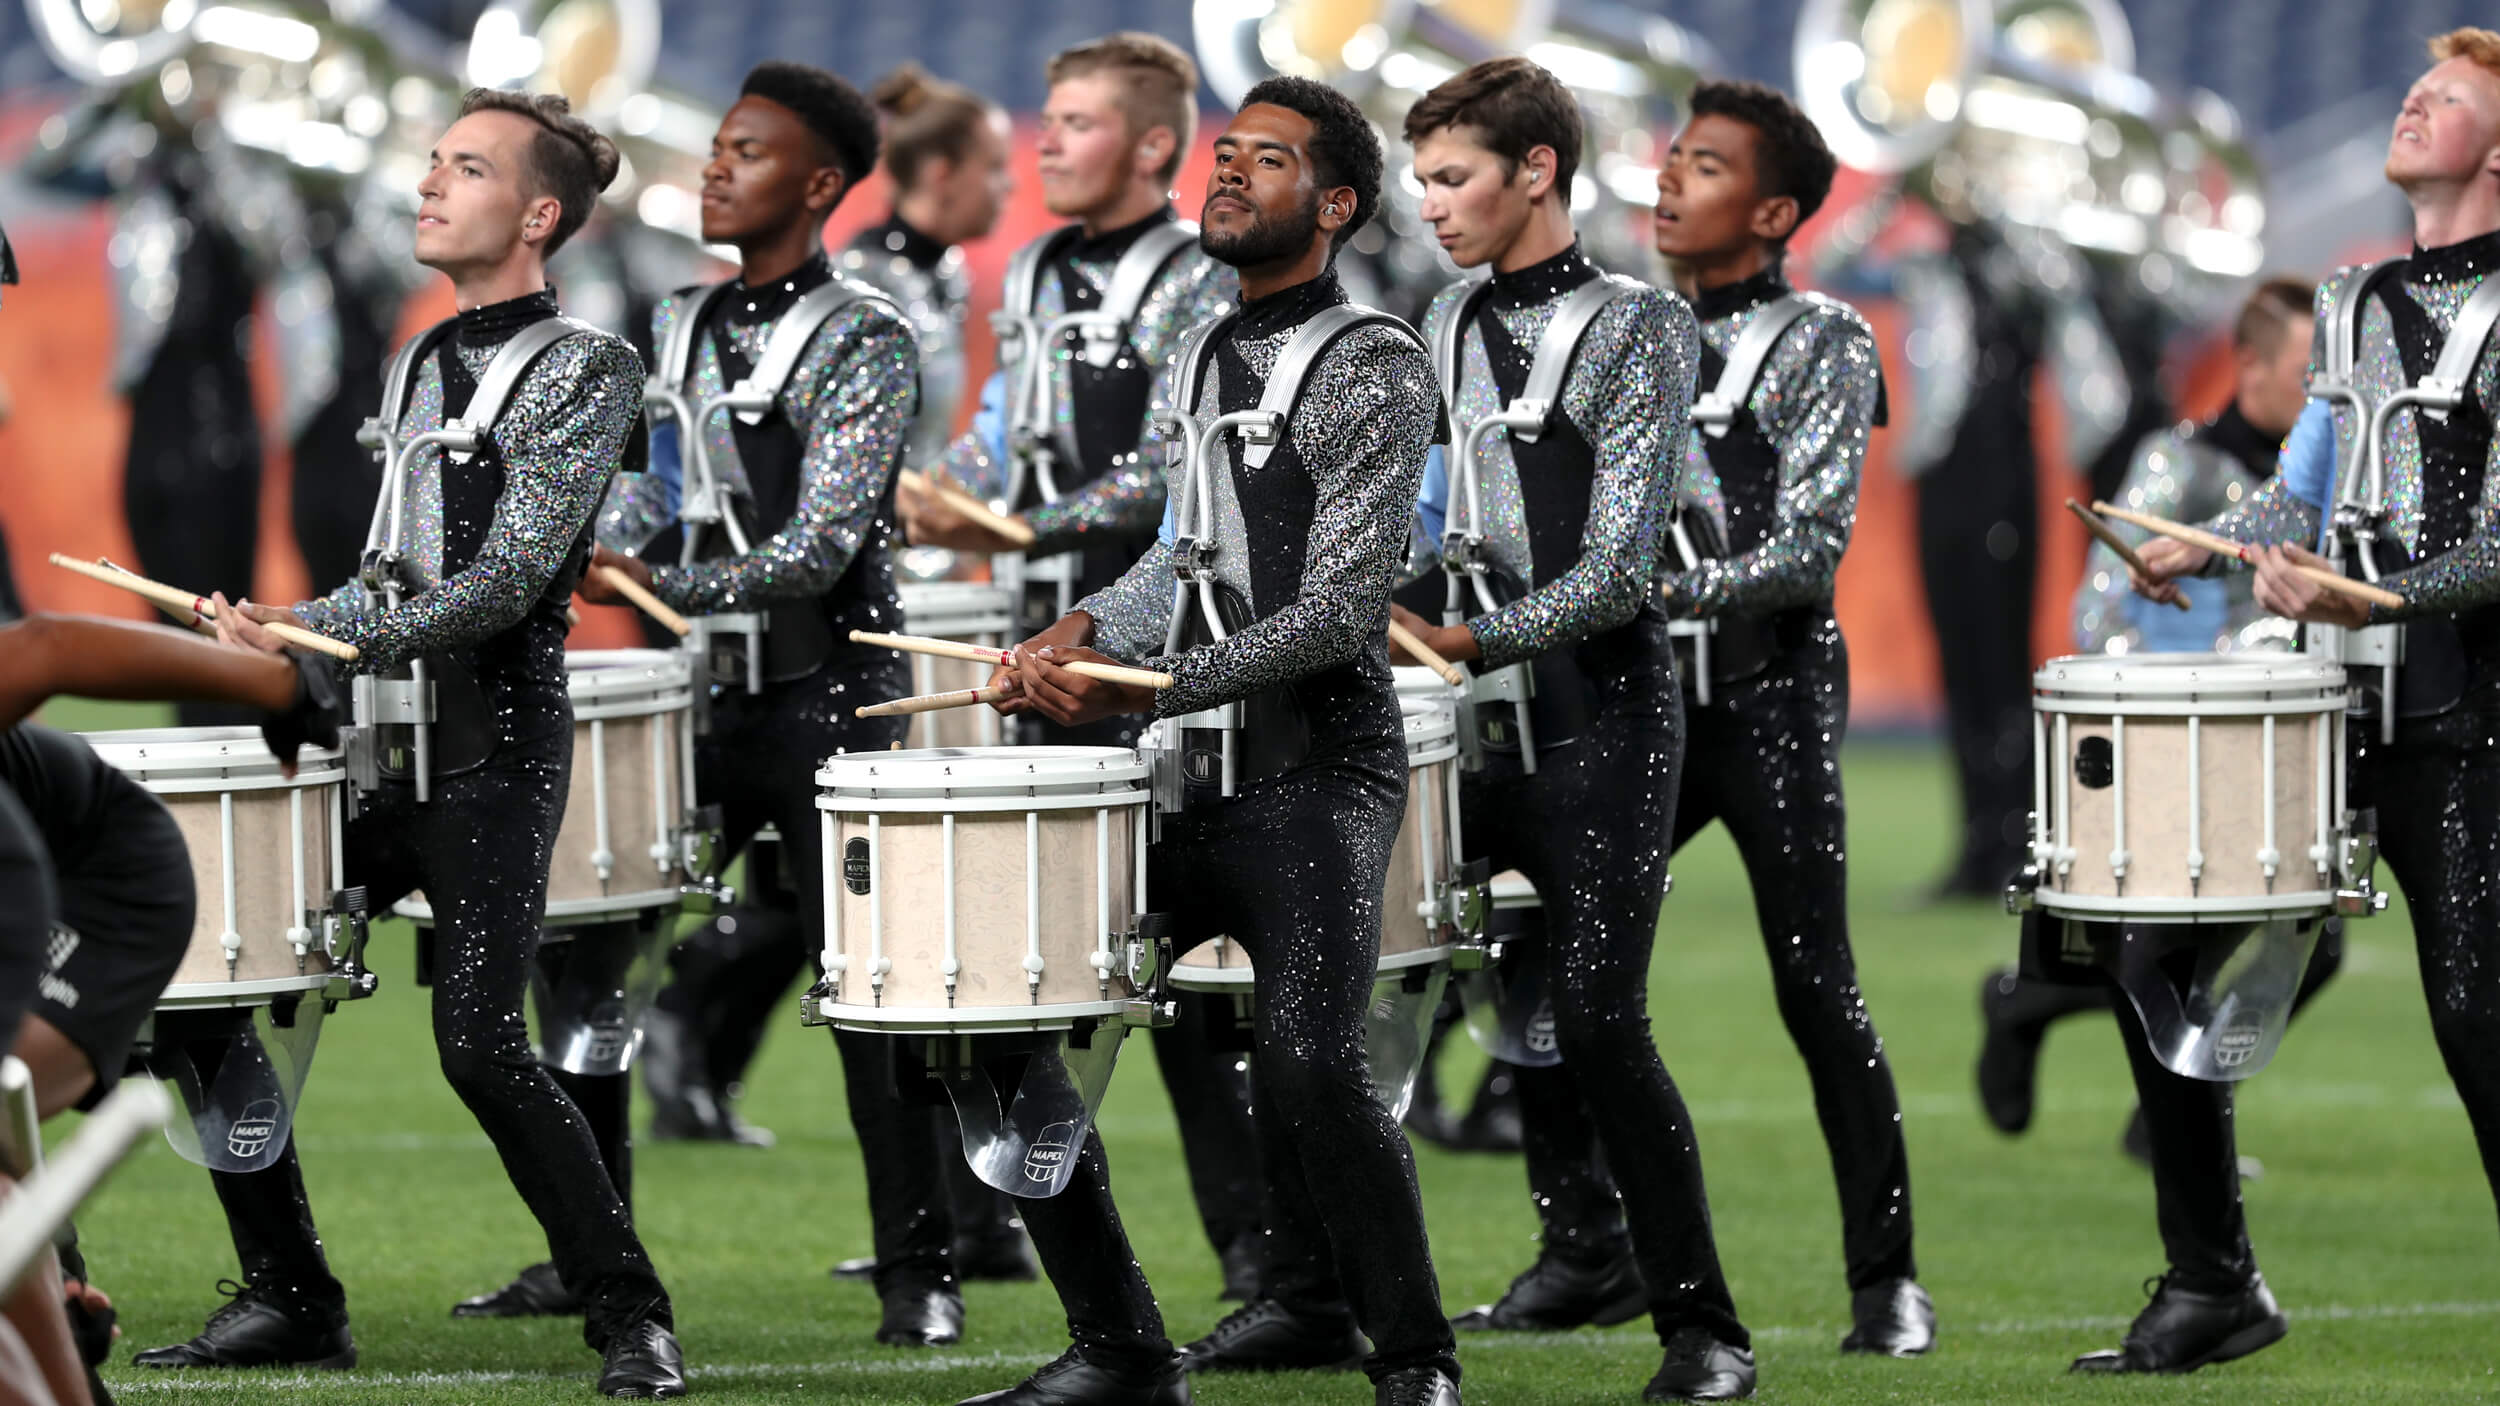 Blue Knights riding Mile High energy into Texas Tour